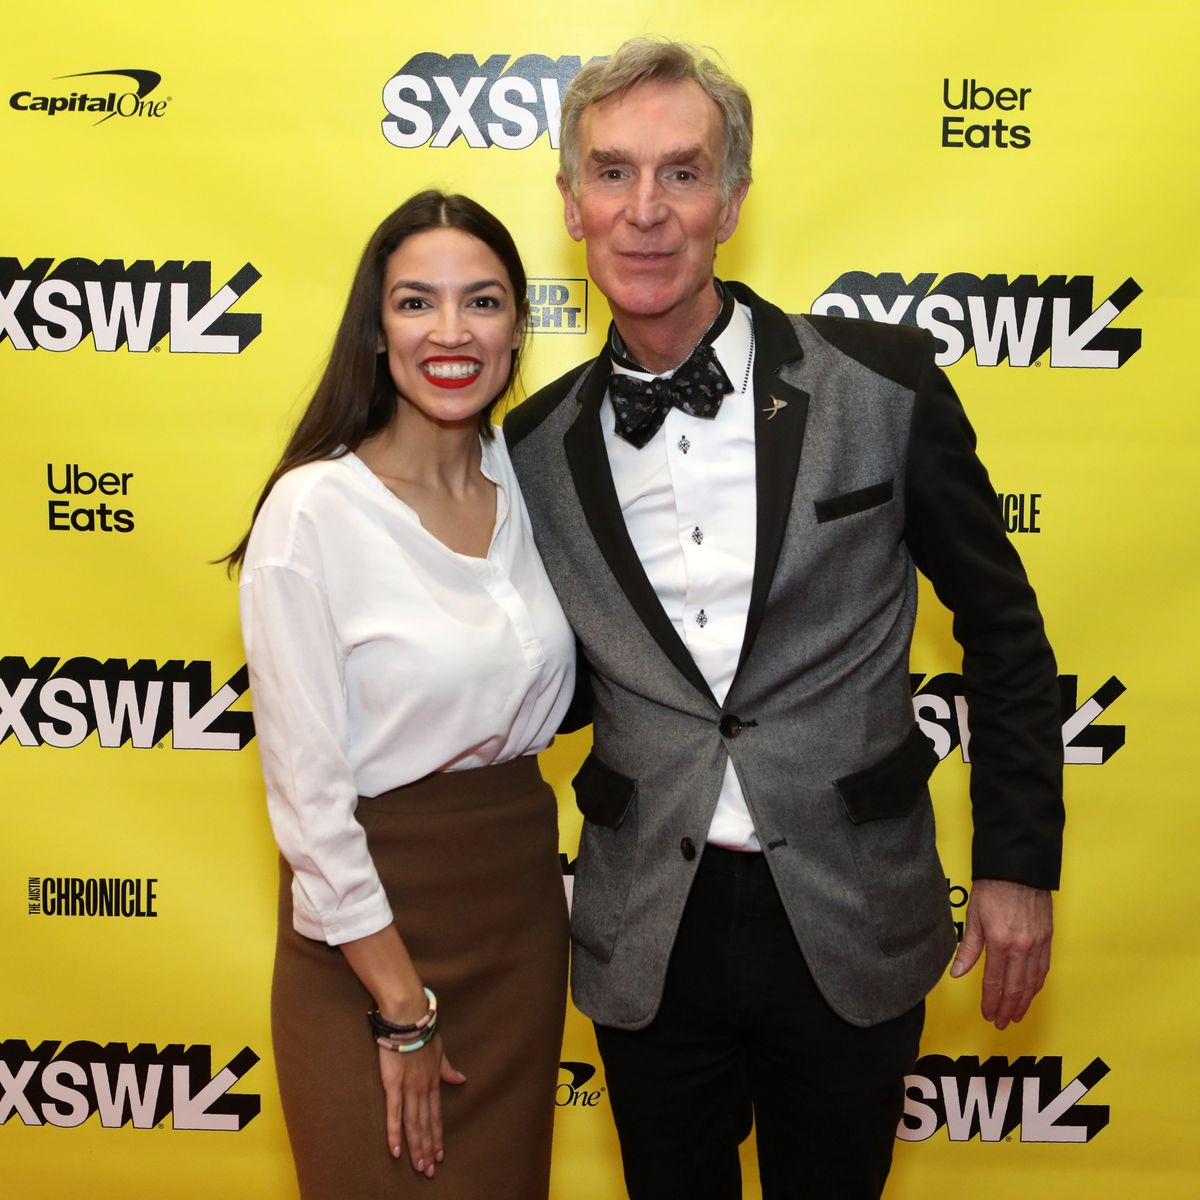 Featured Session: Alexandria Ocasio-Cortez and the New Left - 2019 SXSW Conference and Festivals